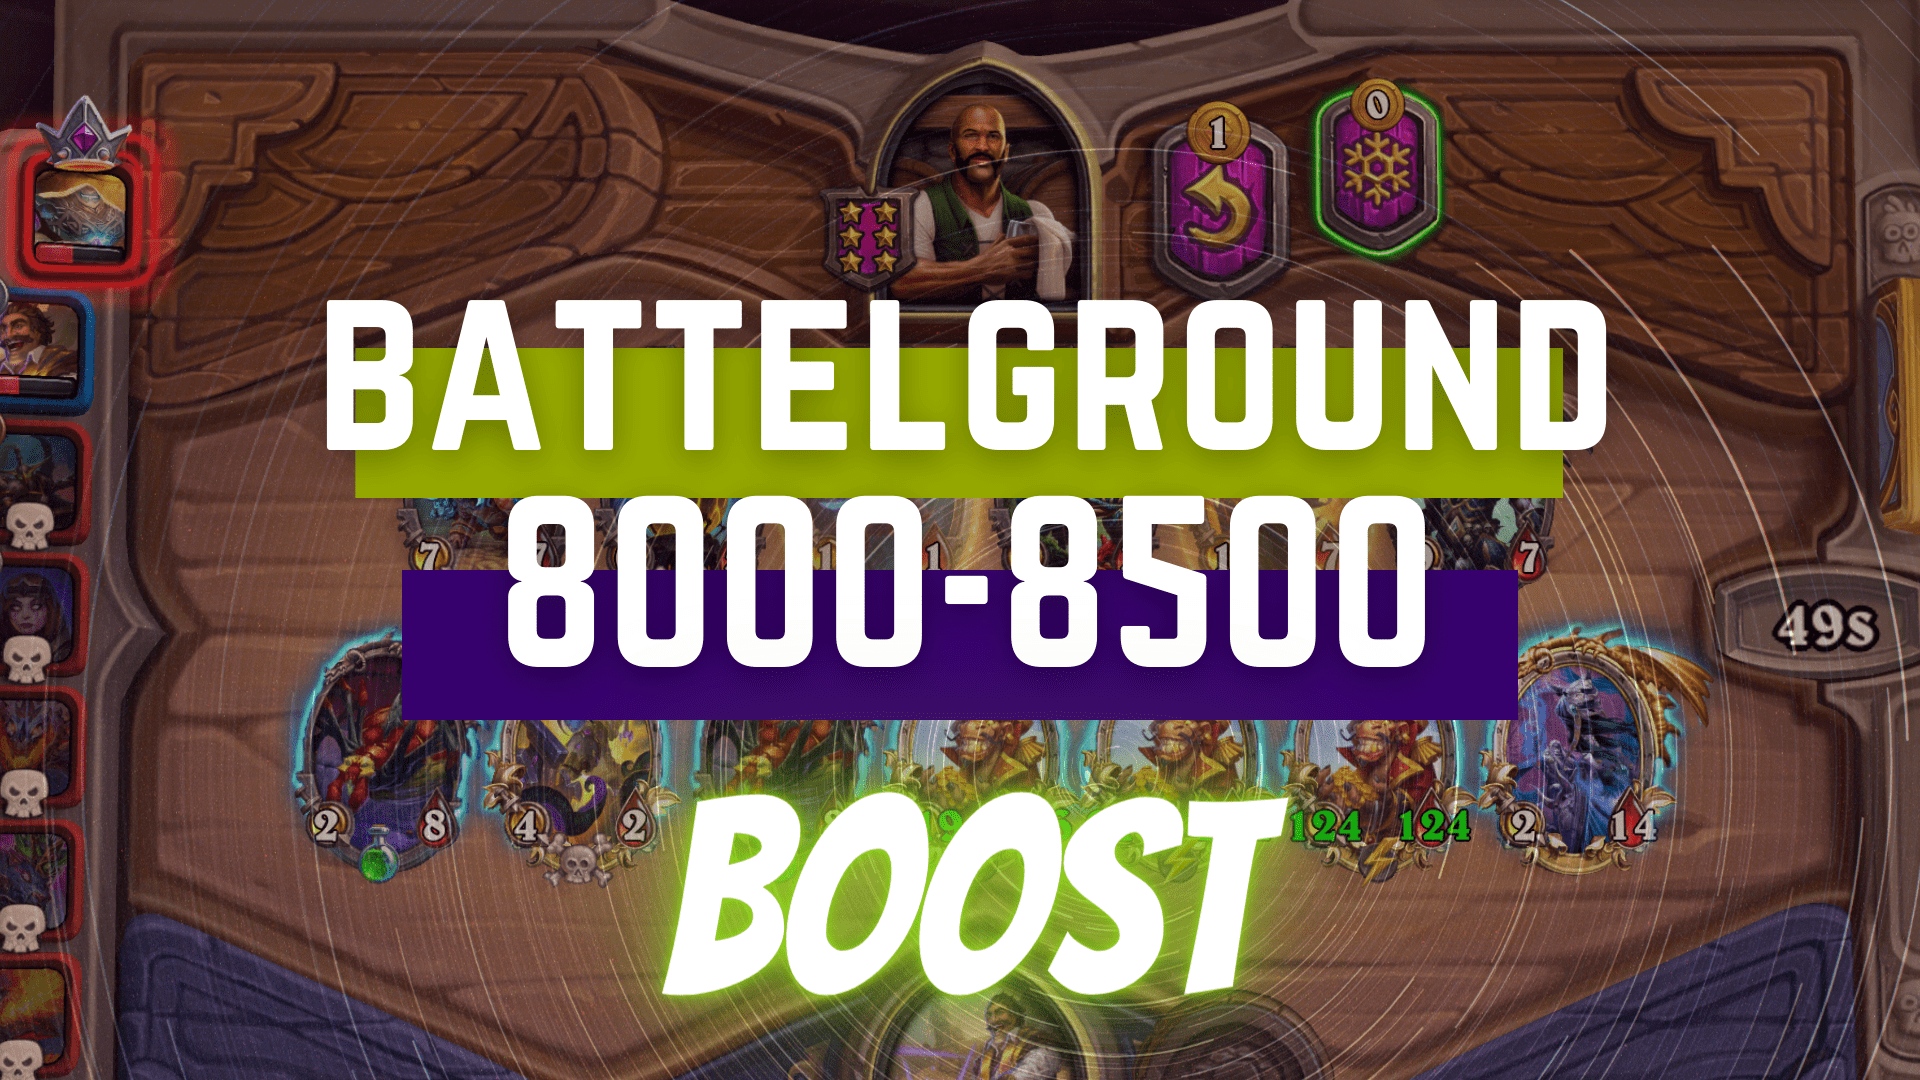 [BATTLEGROUNDS RATING] BOOST FROM 8000 TO 8500 GBD - e2p.com